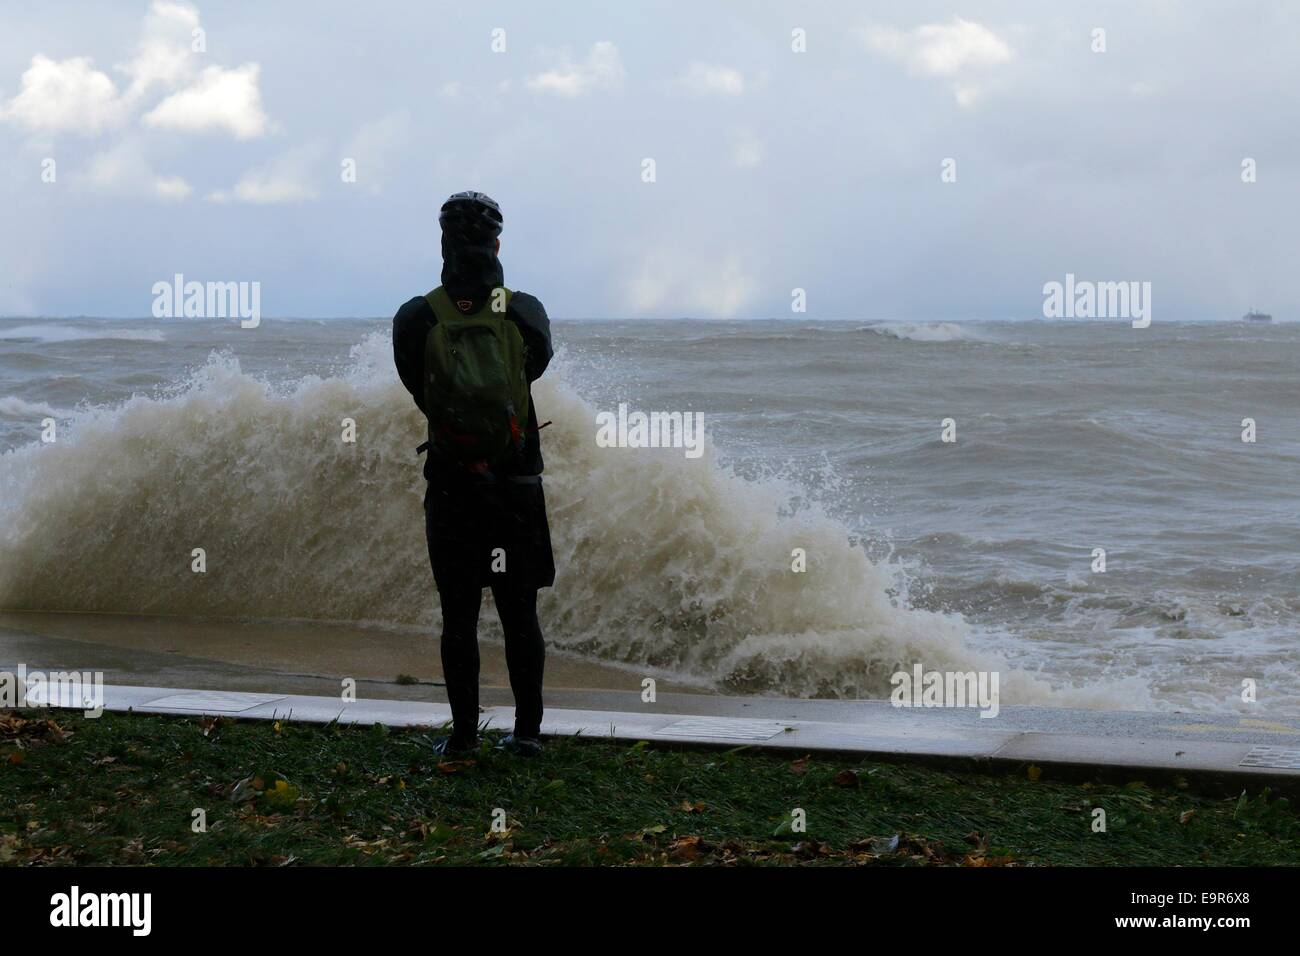 Chicago, Illinois, USA. 31st October, 2014.  A photographer takes shots of raging Lake Michigan during today's gale. Stock Photo